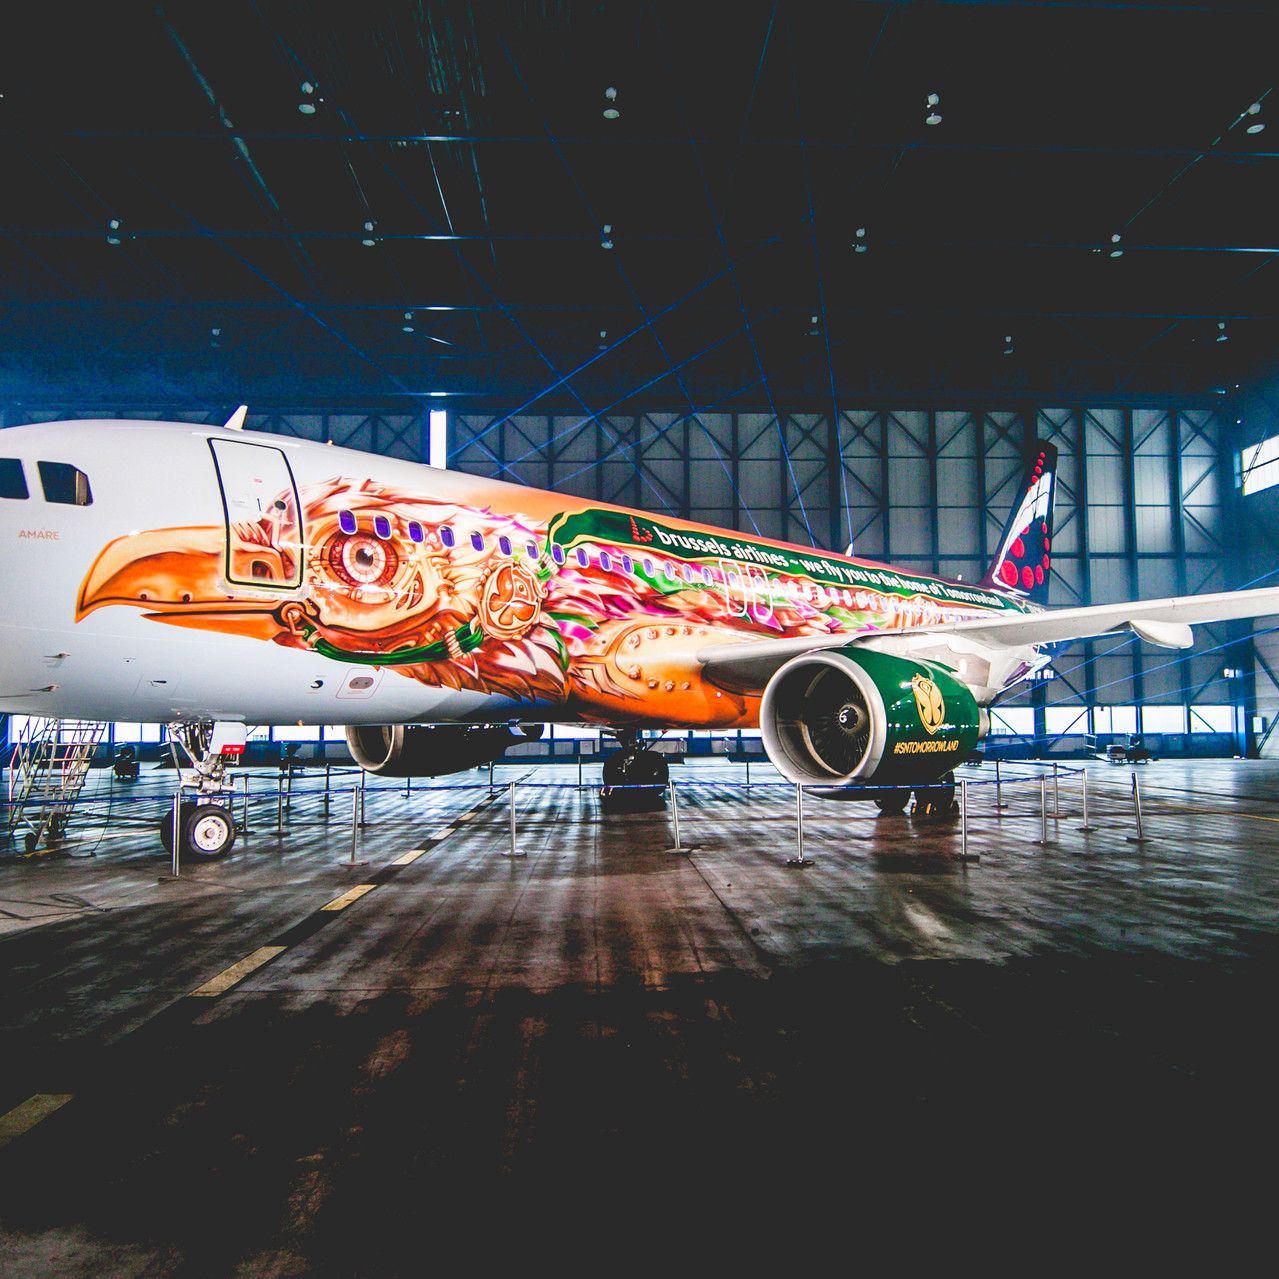 007_Brussels Airlines_unveiling tomorrow